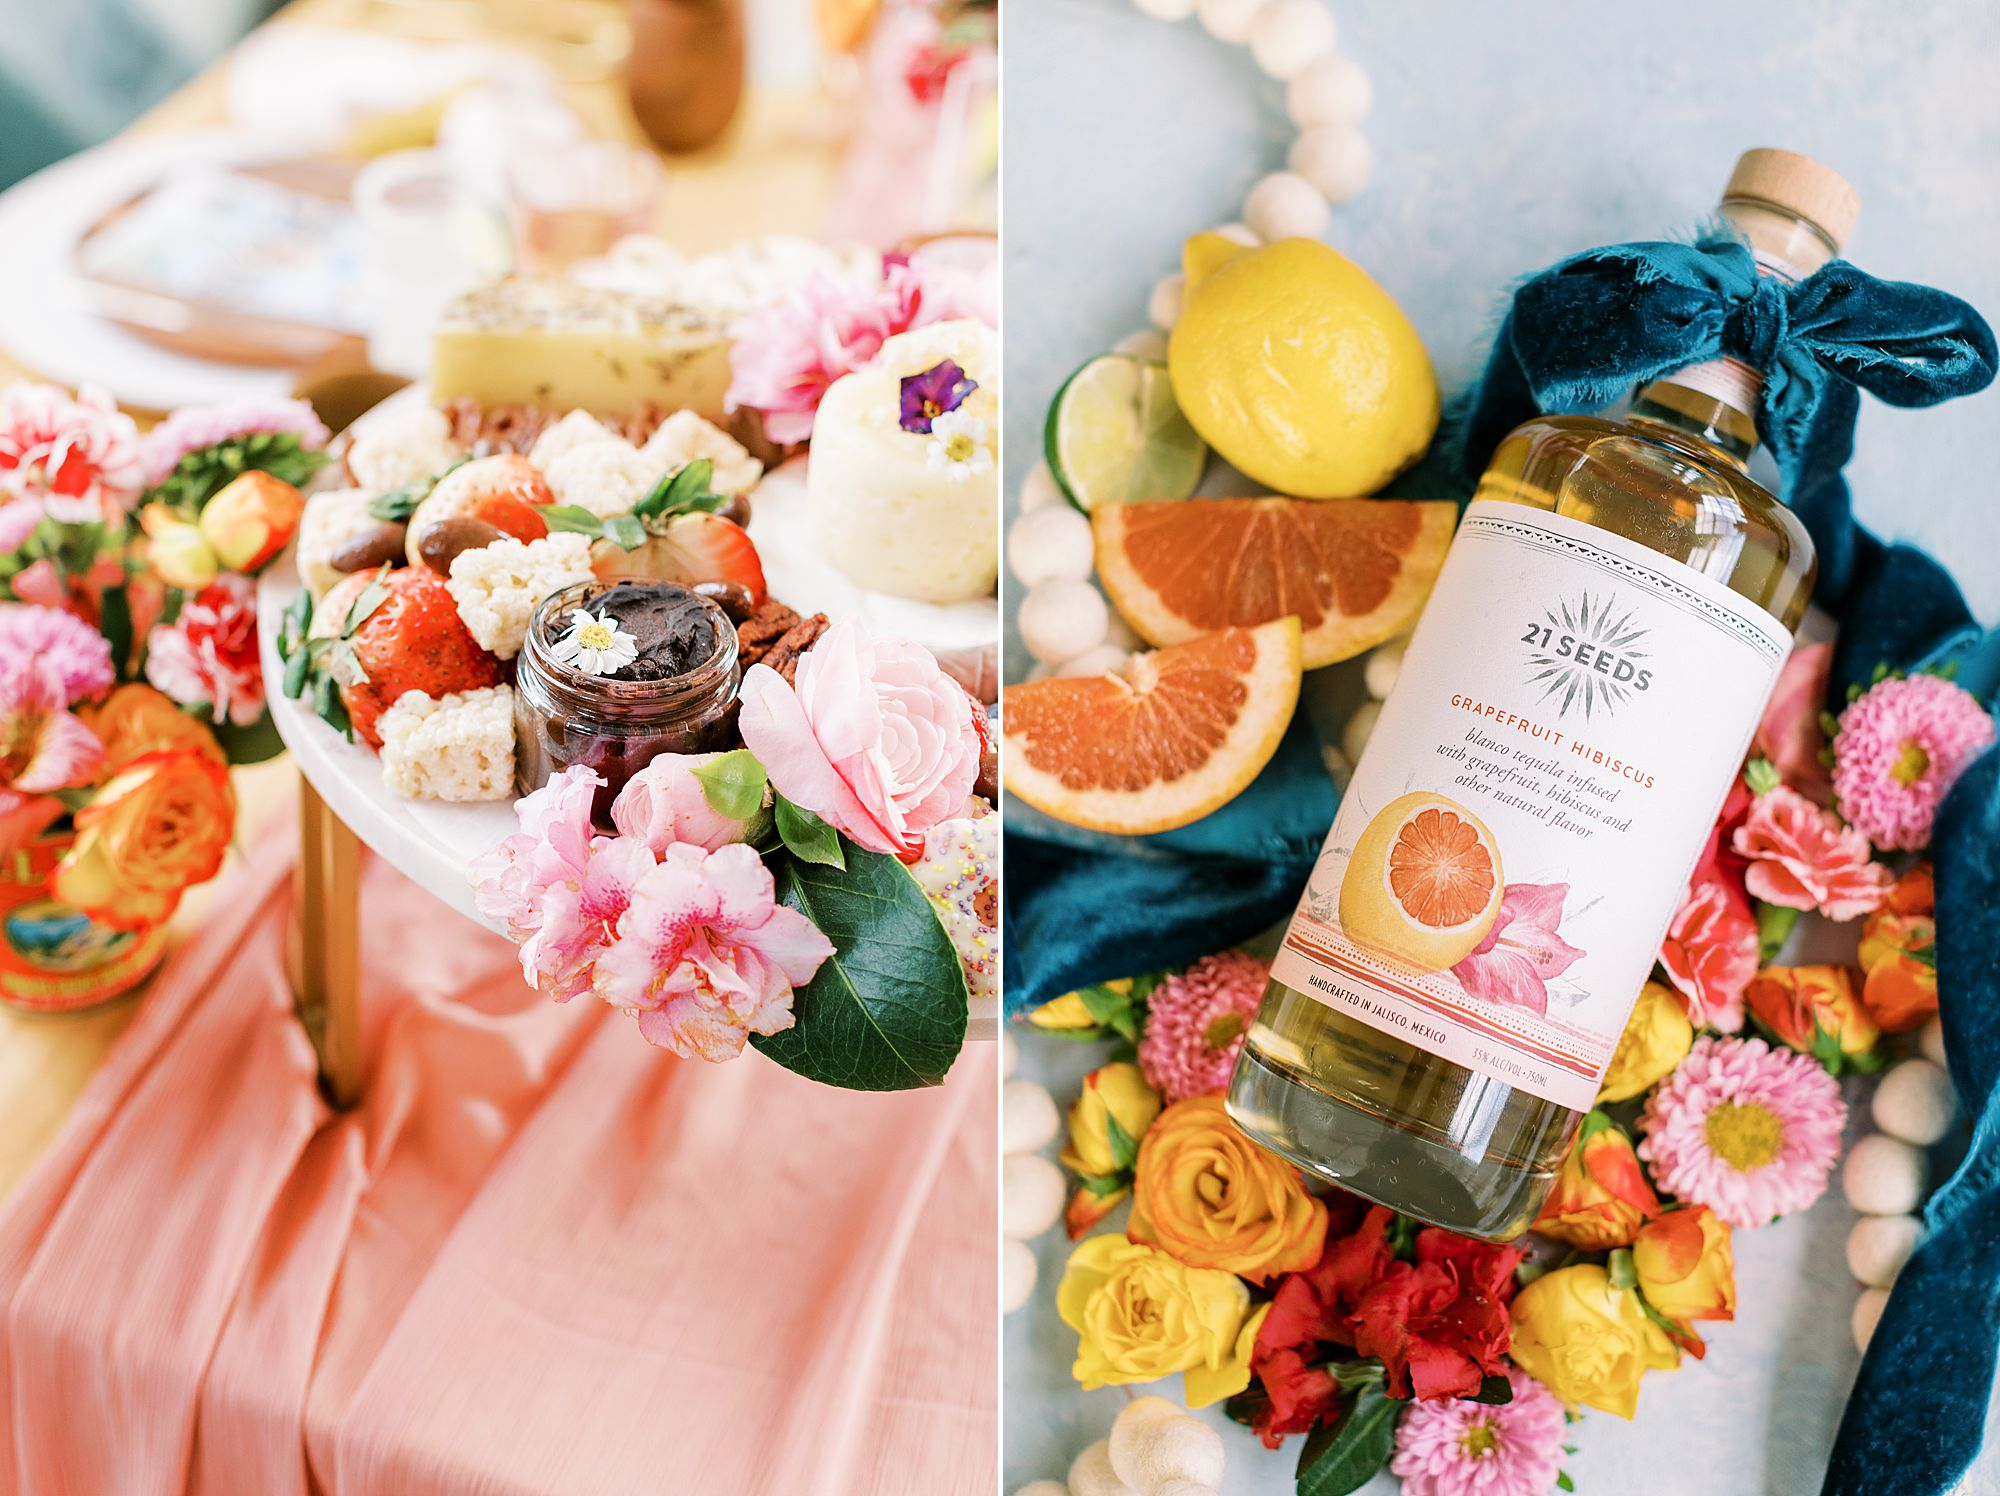 Cinco De Mayo Inspiration for Your FIesta - Party Crush Studio and Ashley Baumgartner_0034.jpg